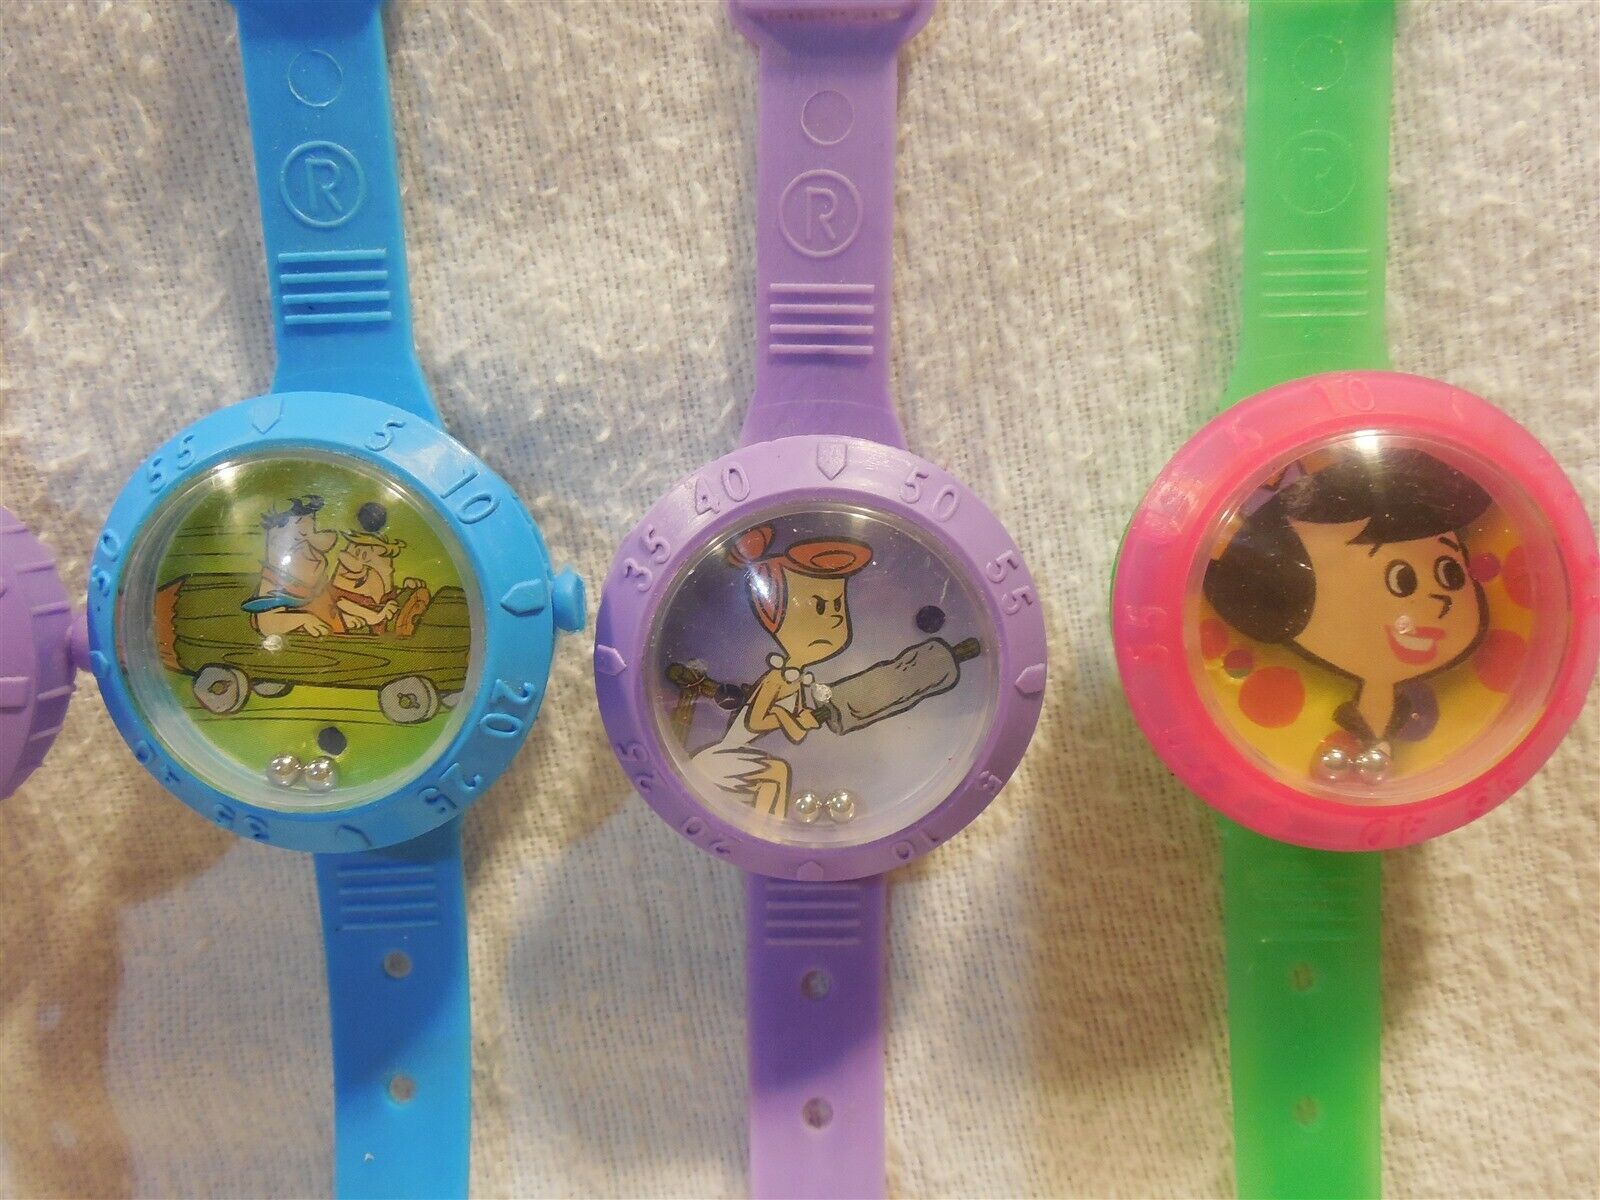 Flintstones Set of 5 Watch Candy Containers w/Dexterity Game Character Faces